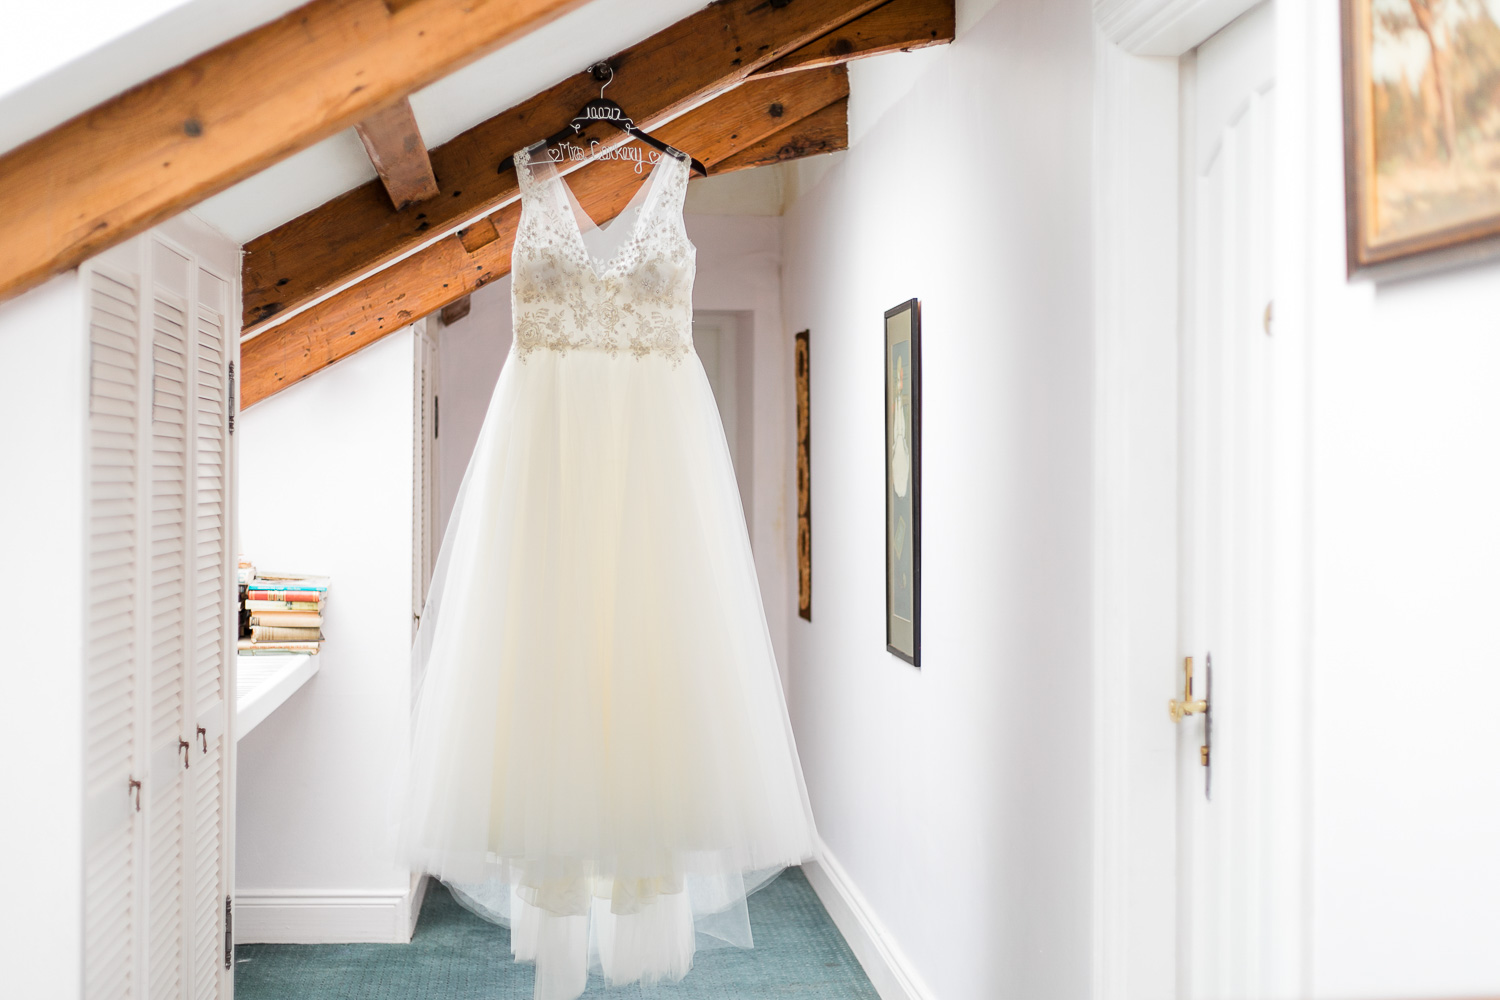 Wedding dress hanging of wooden beams in the converted attic of a castle